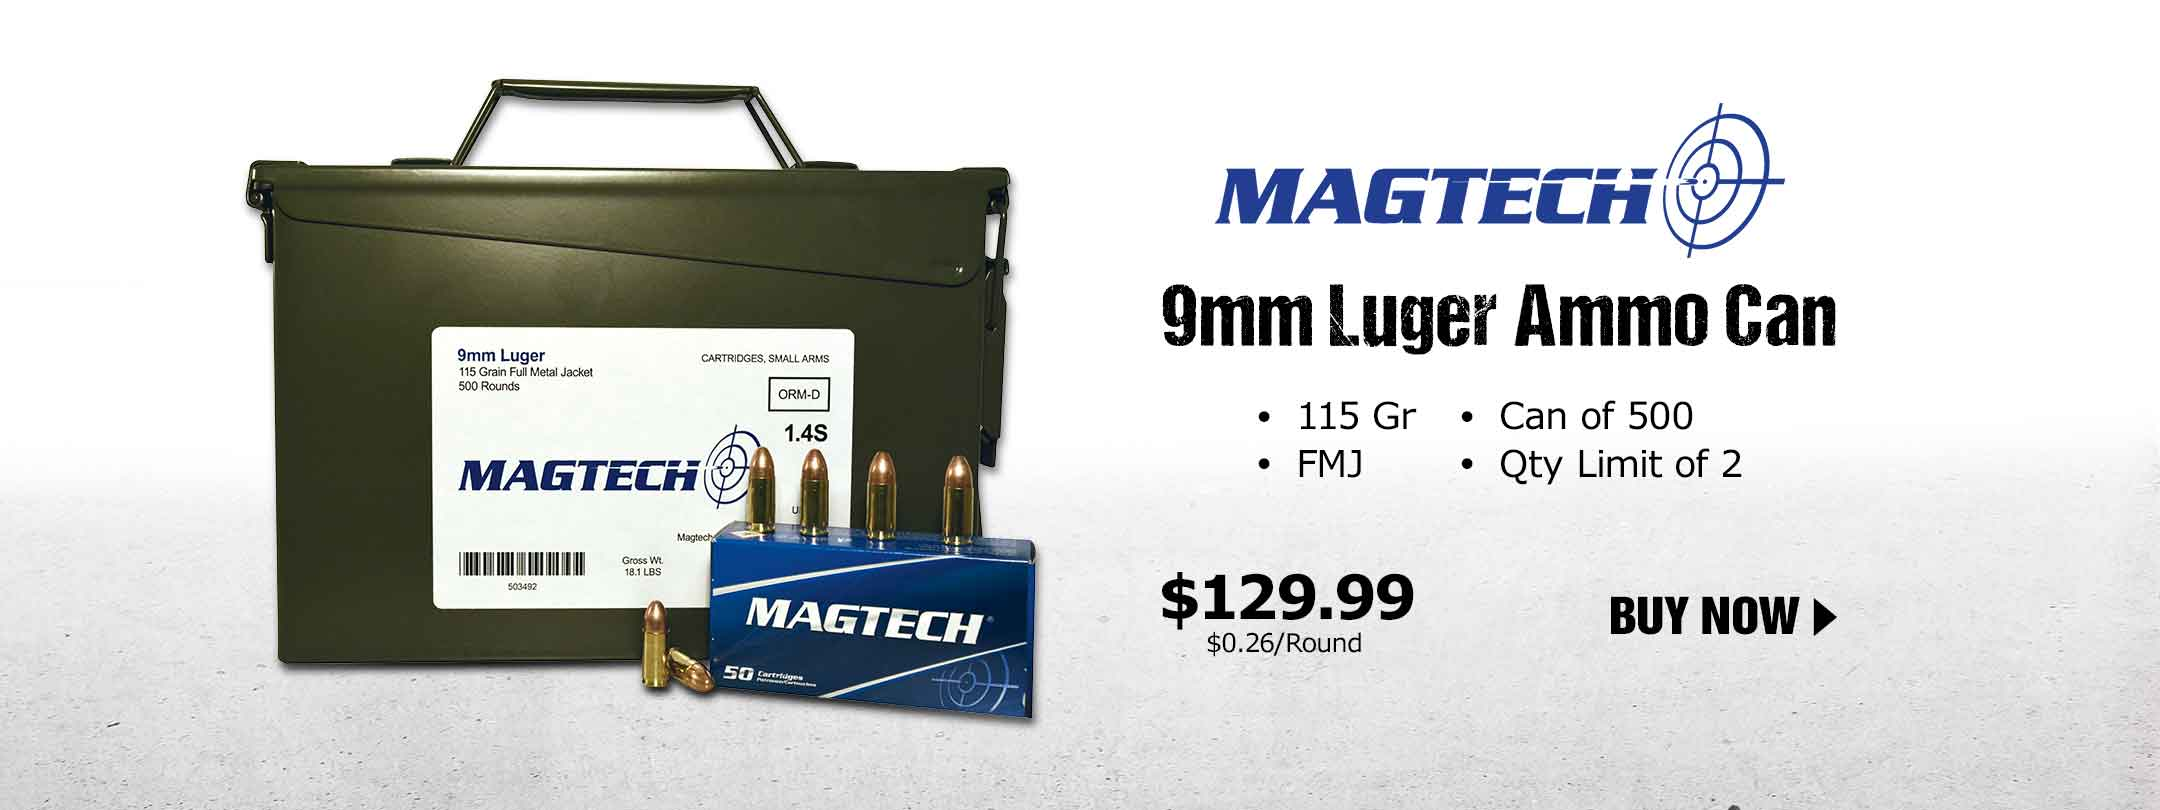 Magtech 9mm Luger 115 Gr FMJ 500 Rnds in 30 Cal Ammo Can